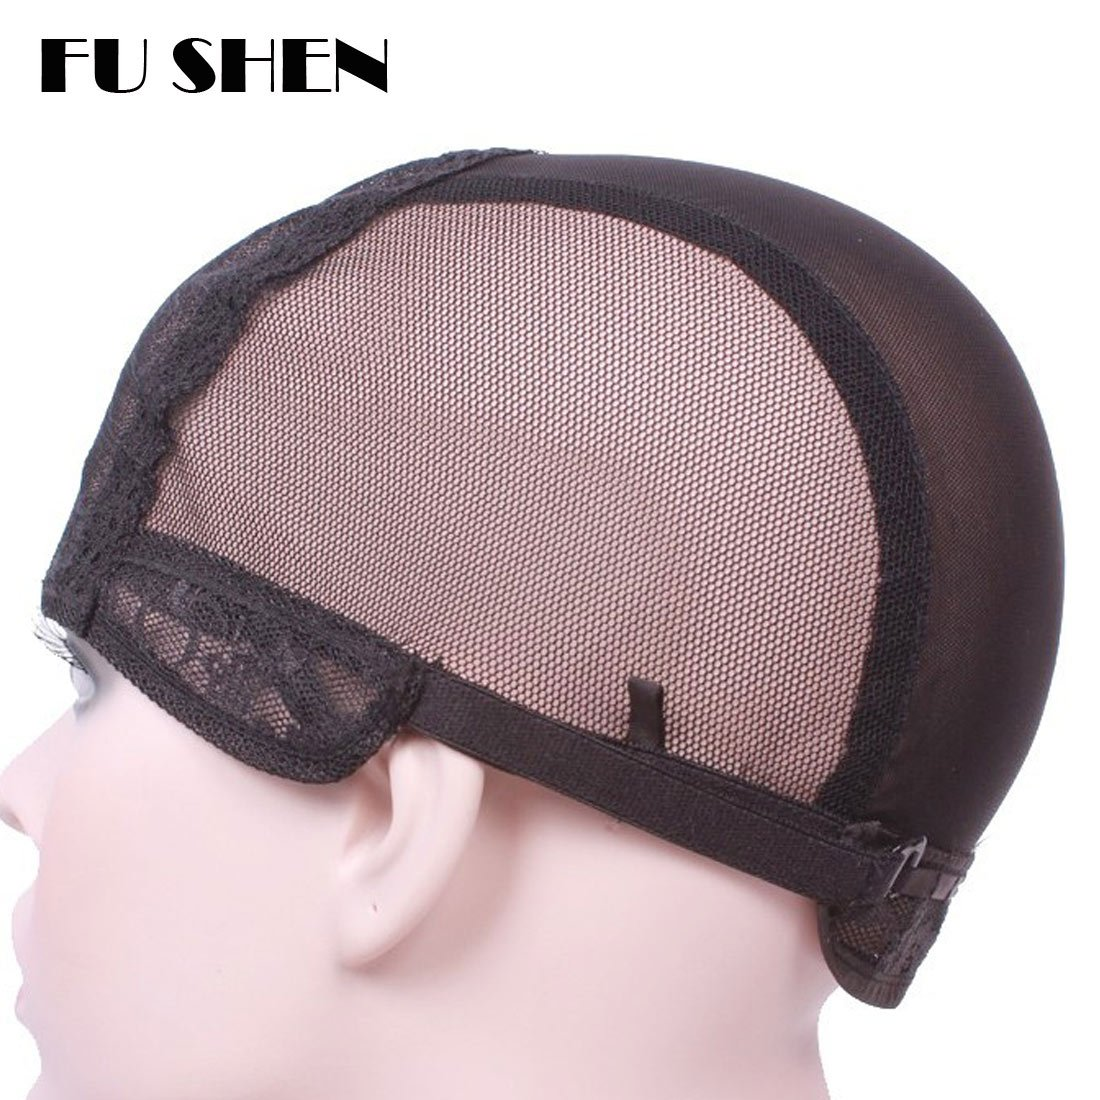 Elastic Wig Caps For Making Wigs Stretch Lace Weaving Cap Extra Large For Big Head with Adjustable Straps and Combs (Black 1 Piece XL-23Inch) by FU SHEN (Image #3)